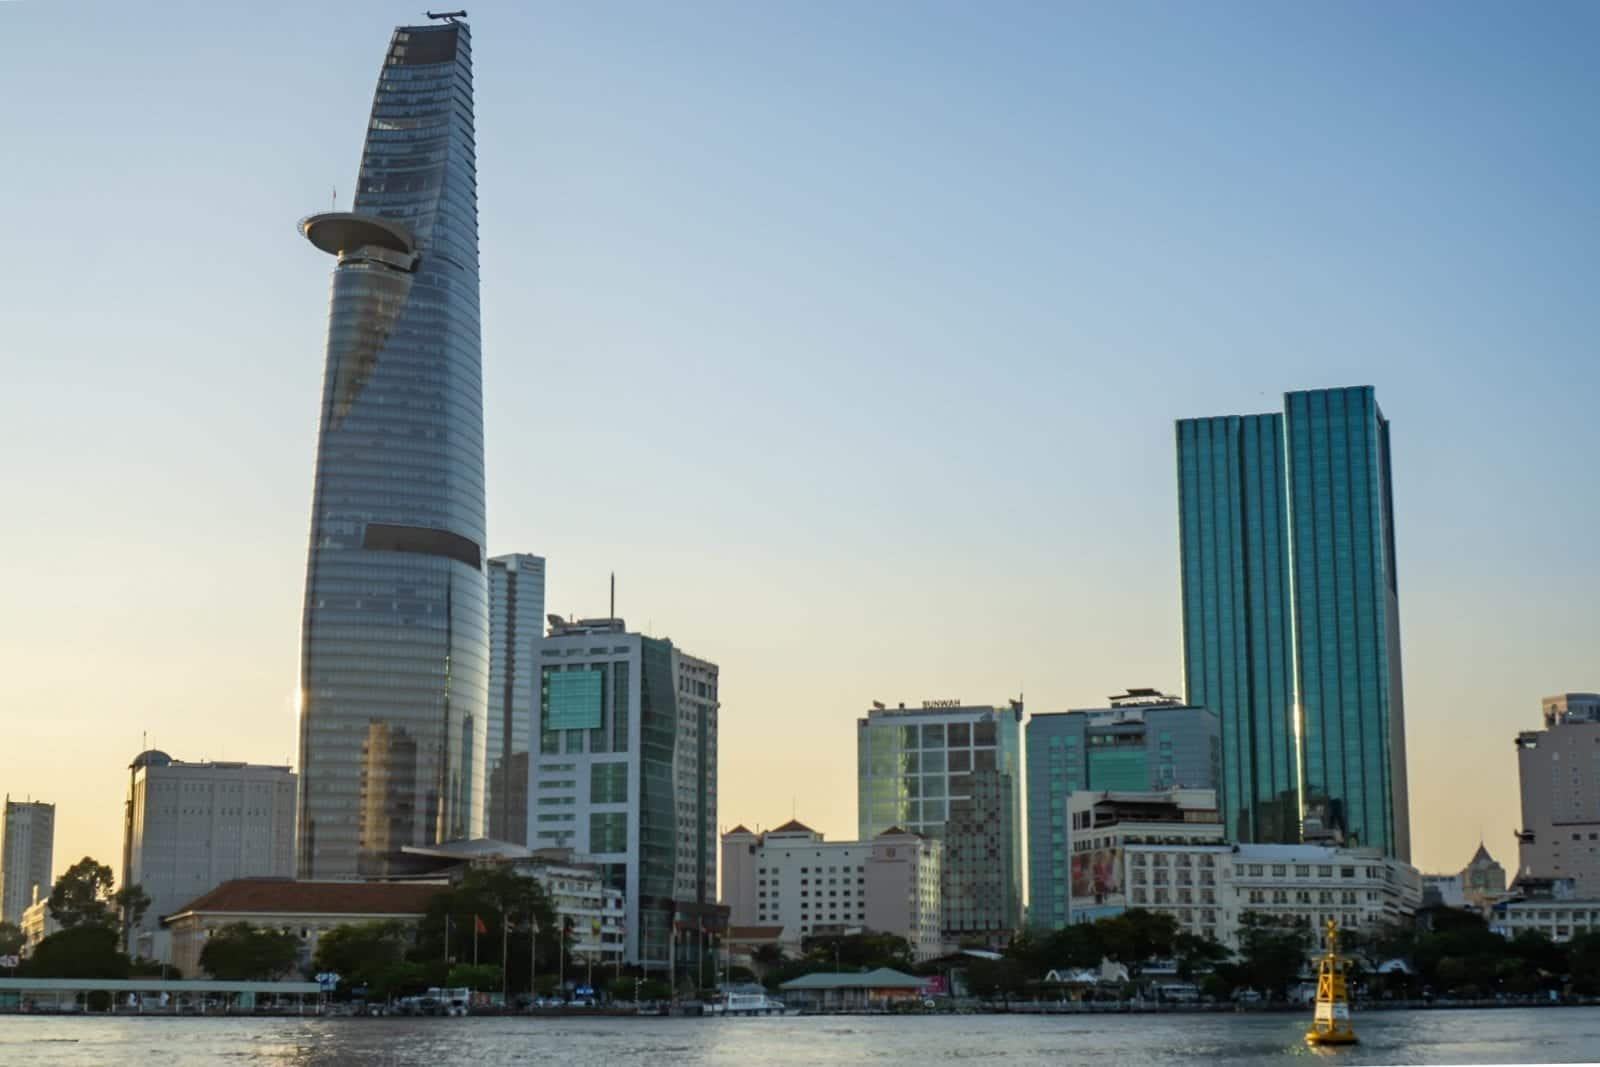 Image of the Bitexco Financial Tower in Vietnam on the river